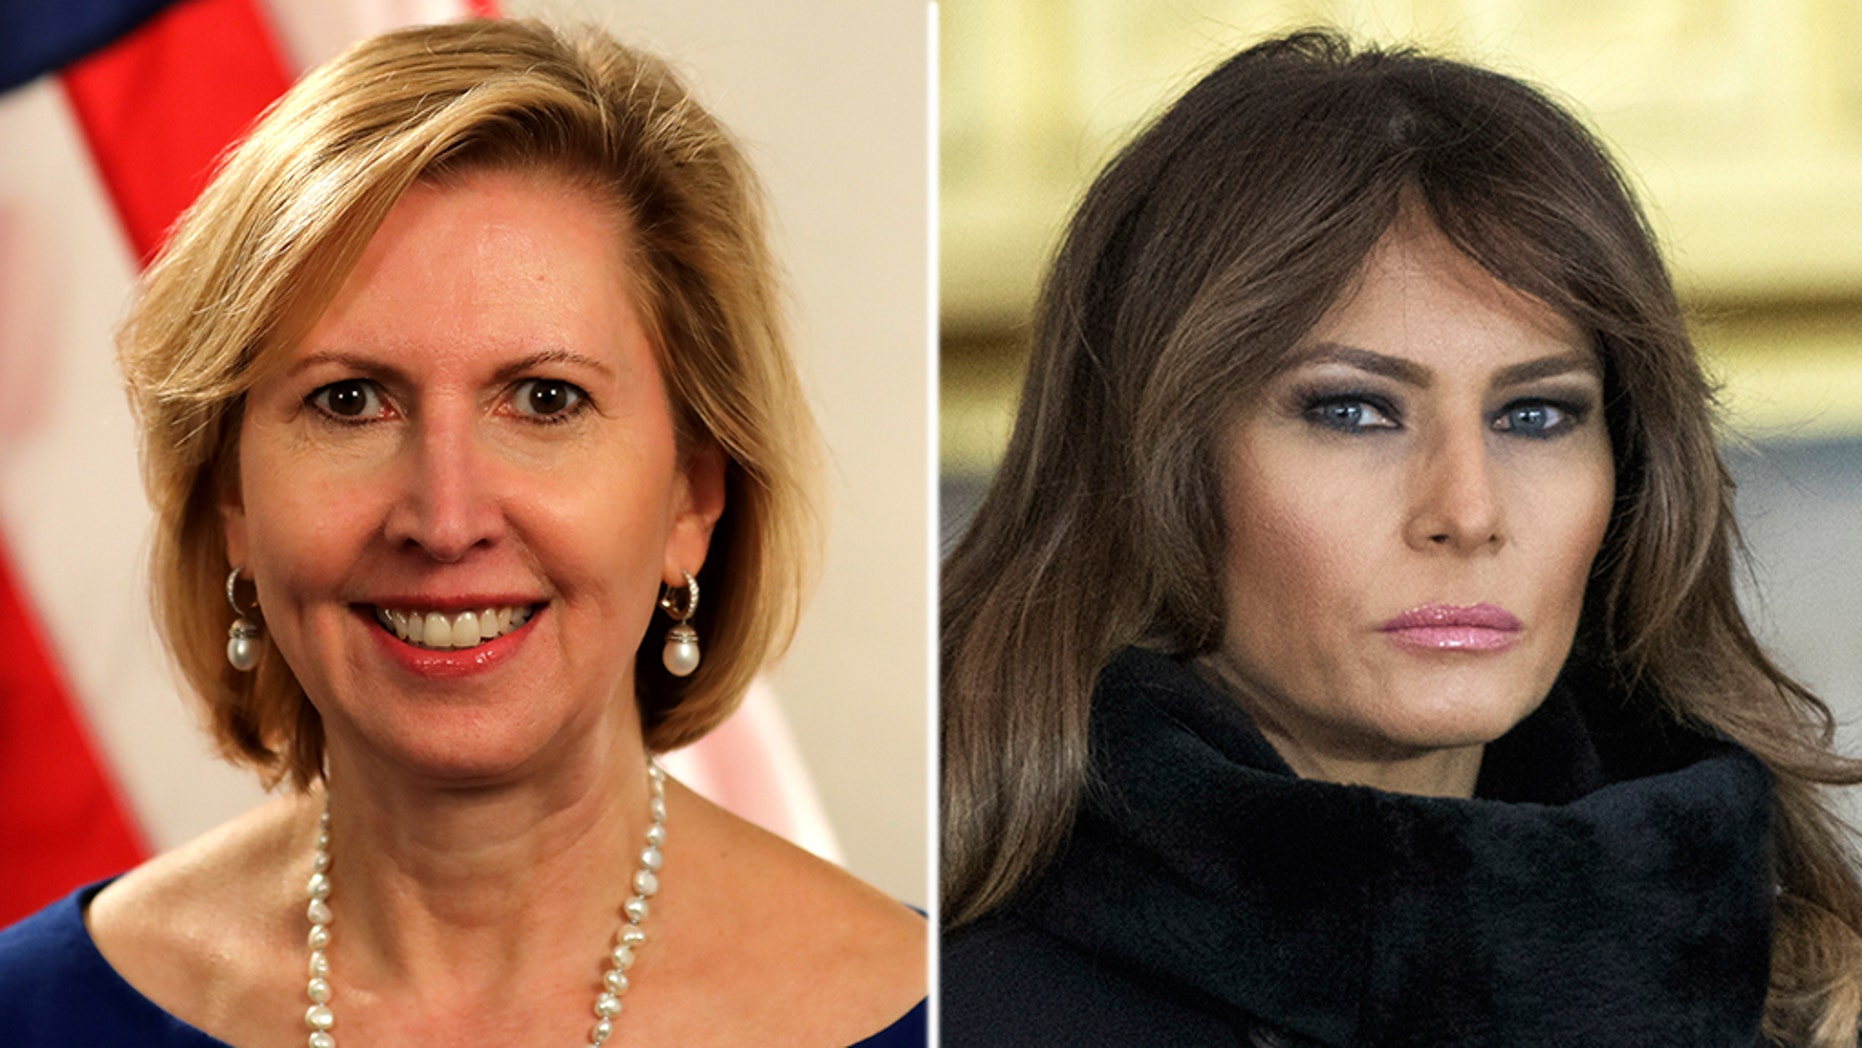 National Security adviser leaves at First Lady's request